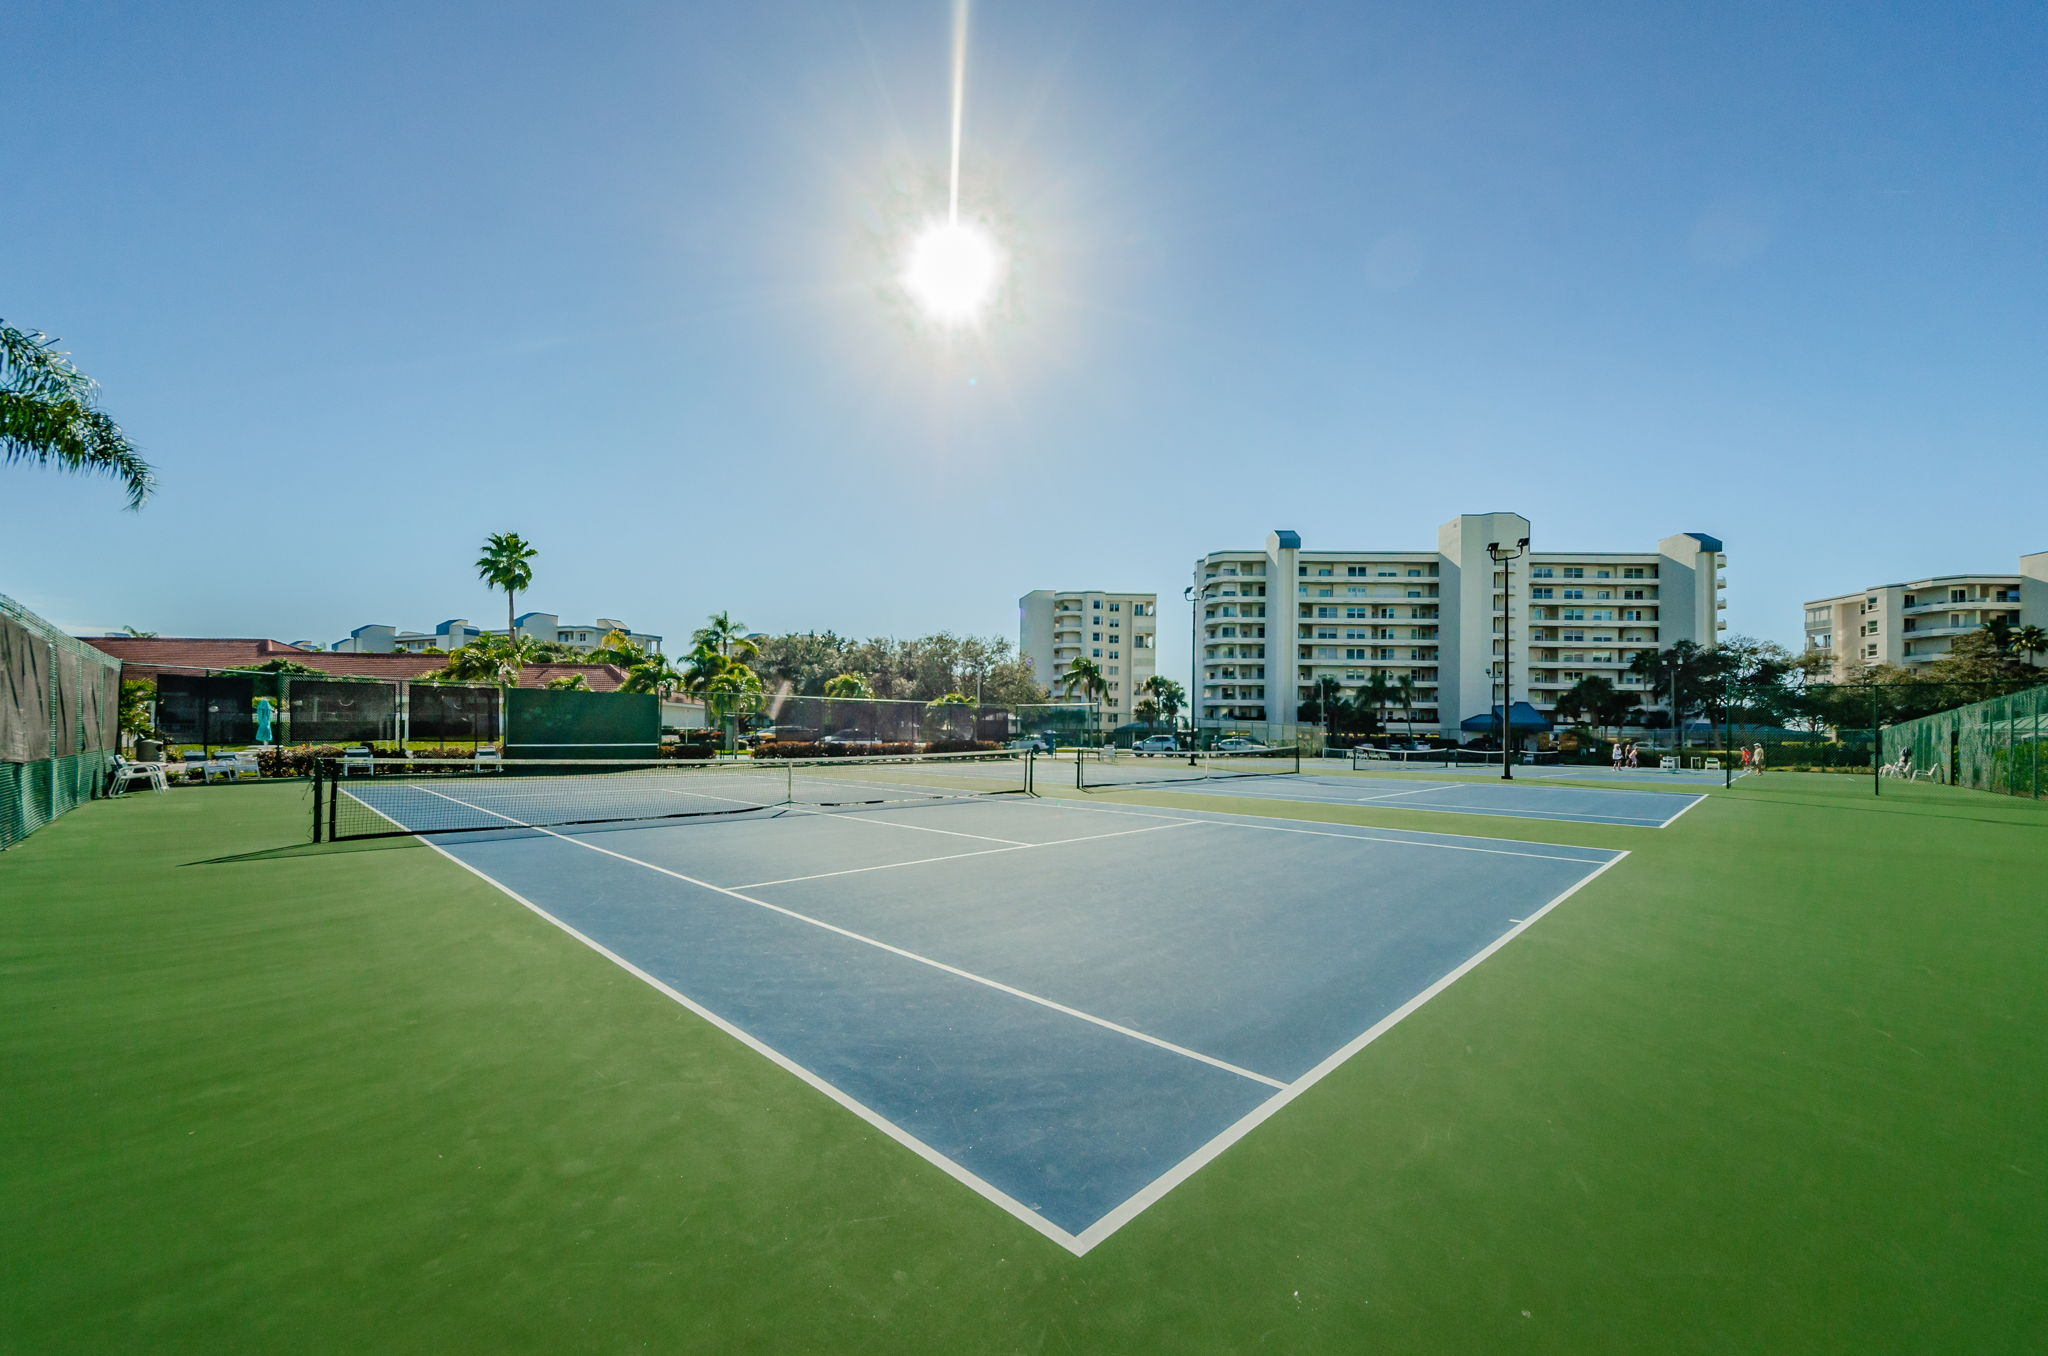 Tennis and Pickleball Courts2